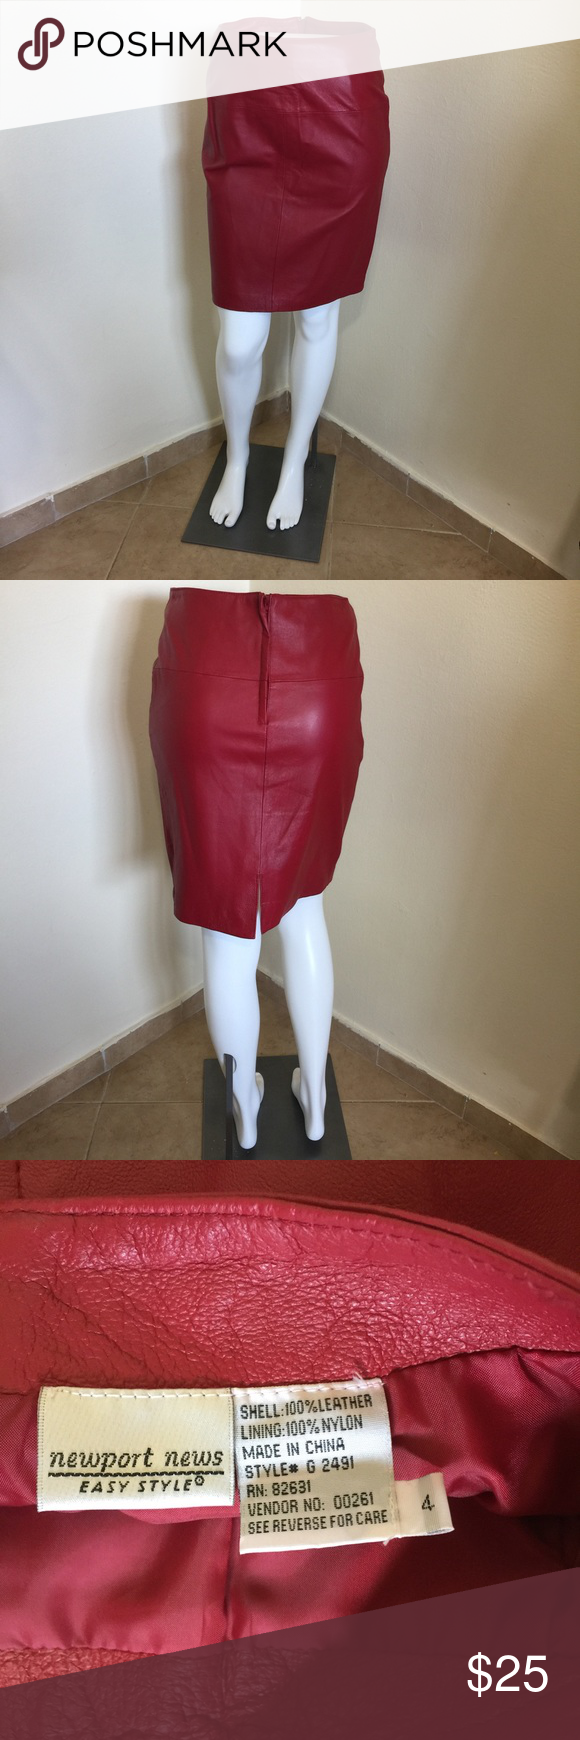 Newport News Blood Red Leather Pencil Skirt NWT 4 Label- Newport News.                                             Style- Flat front no waistband zip up leather pencil skirt, fully lined, seamed yoke on waist, back walking slit.                                         Size-4 Shown on a 2 Mannequin Know your measurements. Just above knee length!                                               Waist- 26, Hip-36 L-19                                    Color. - Deep Blood Red…